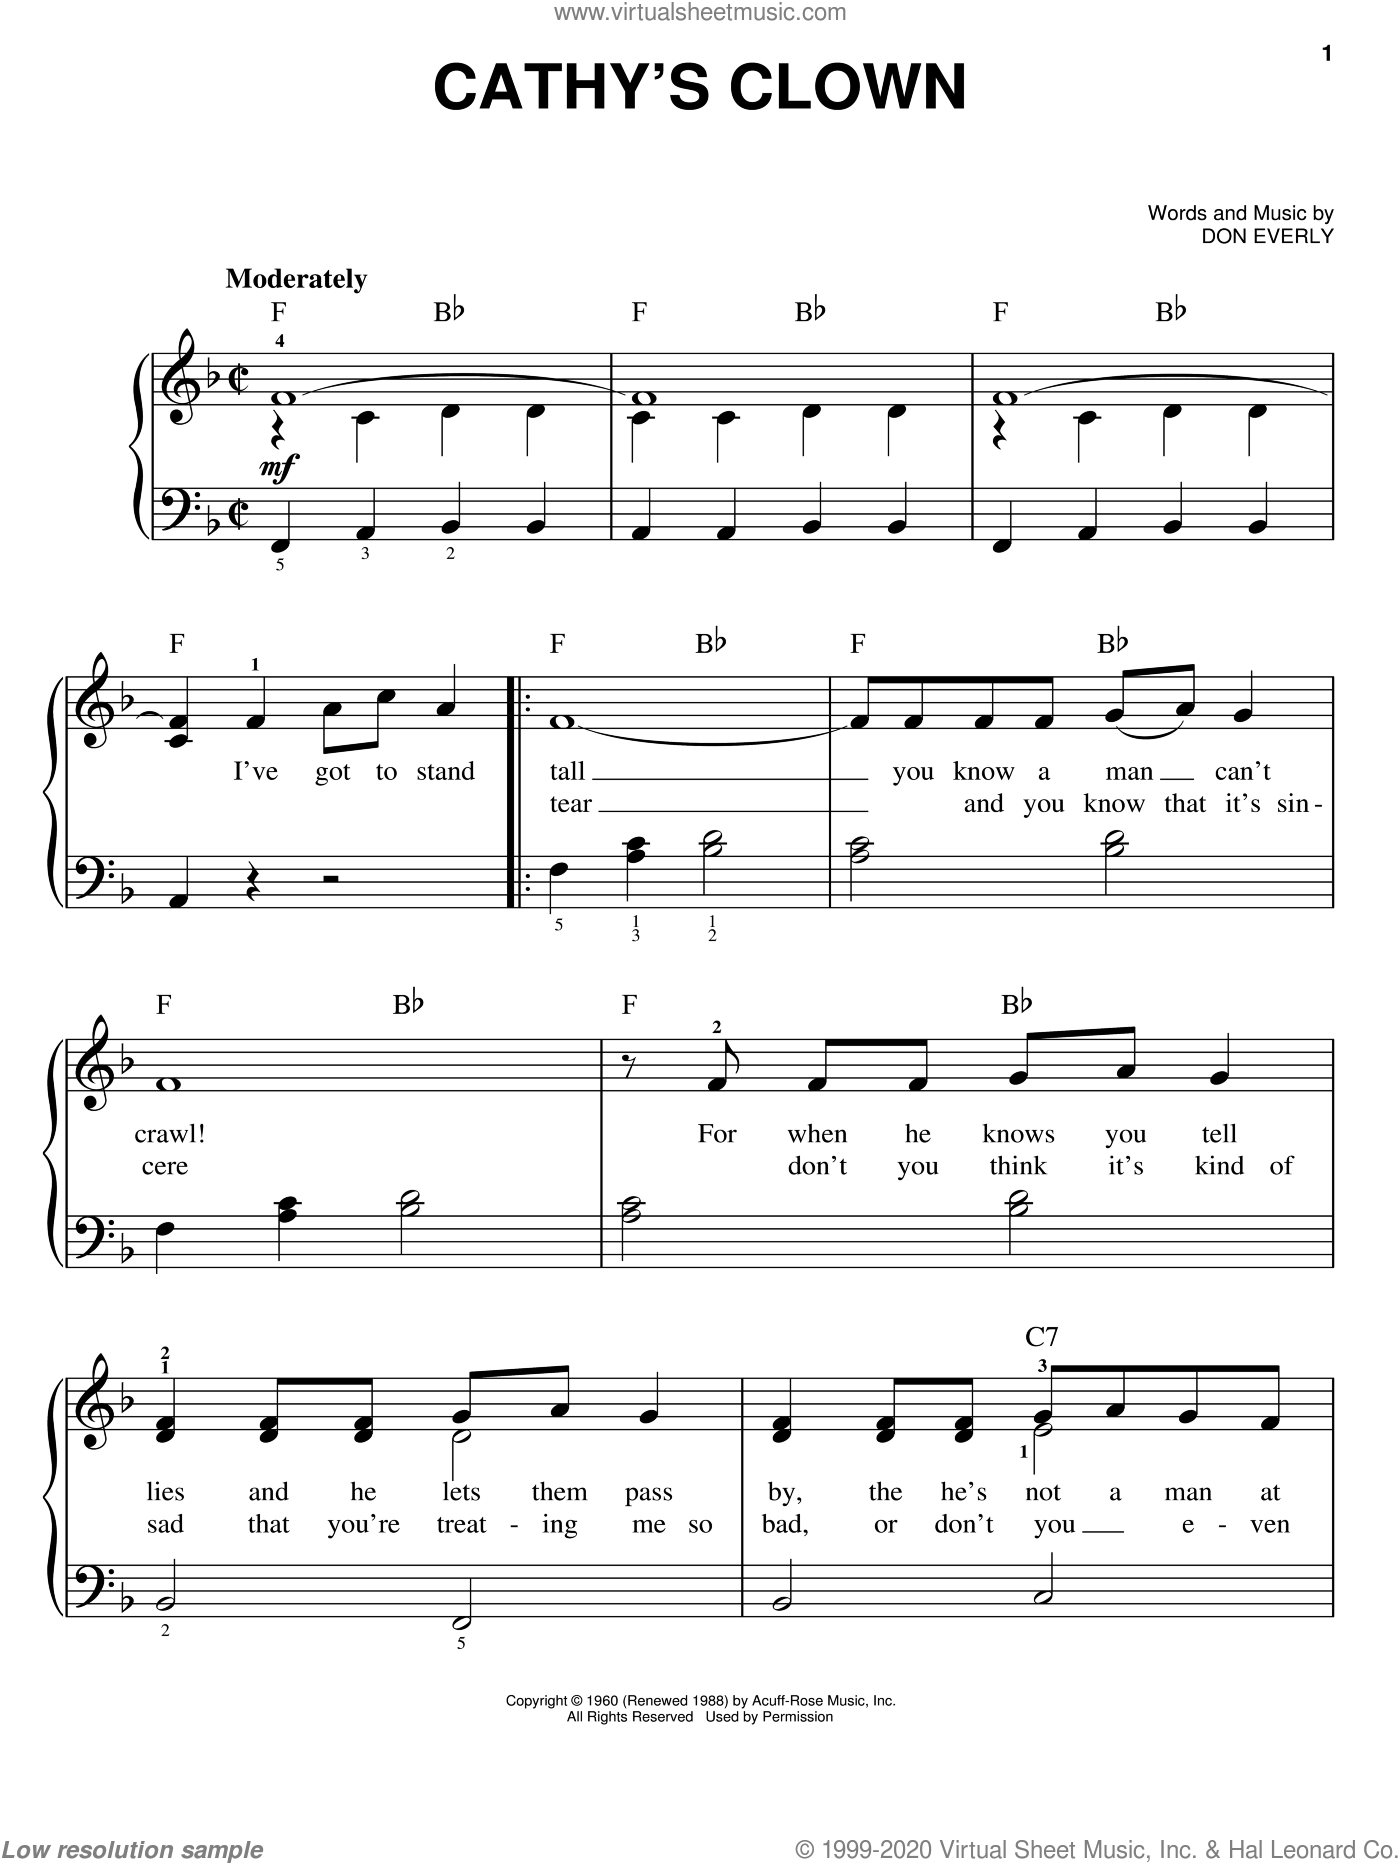 Cathy's Clown sheet music for piano solo by Everly Brothers, Reba McEntire and Don Everly, easy skill level